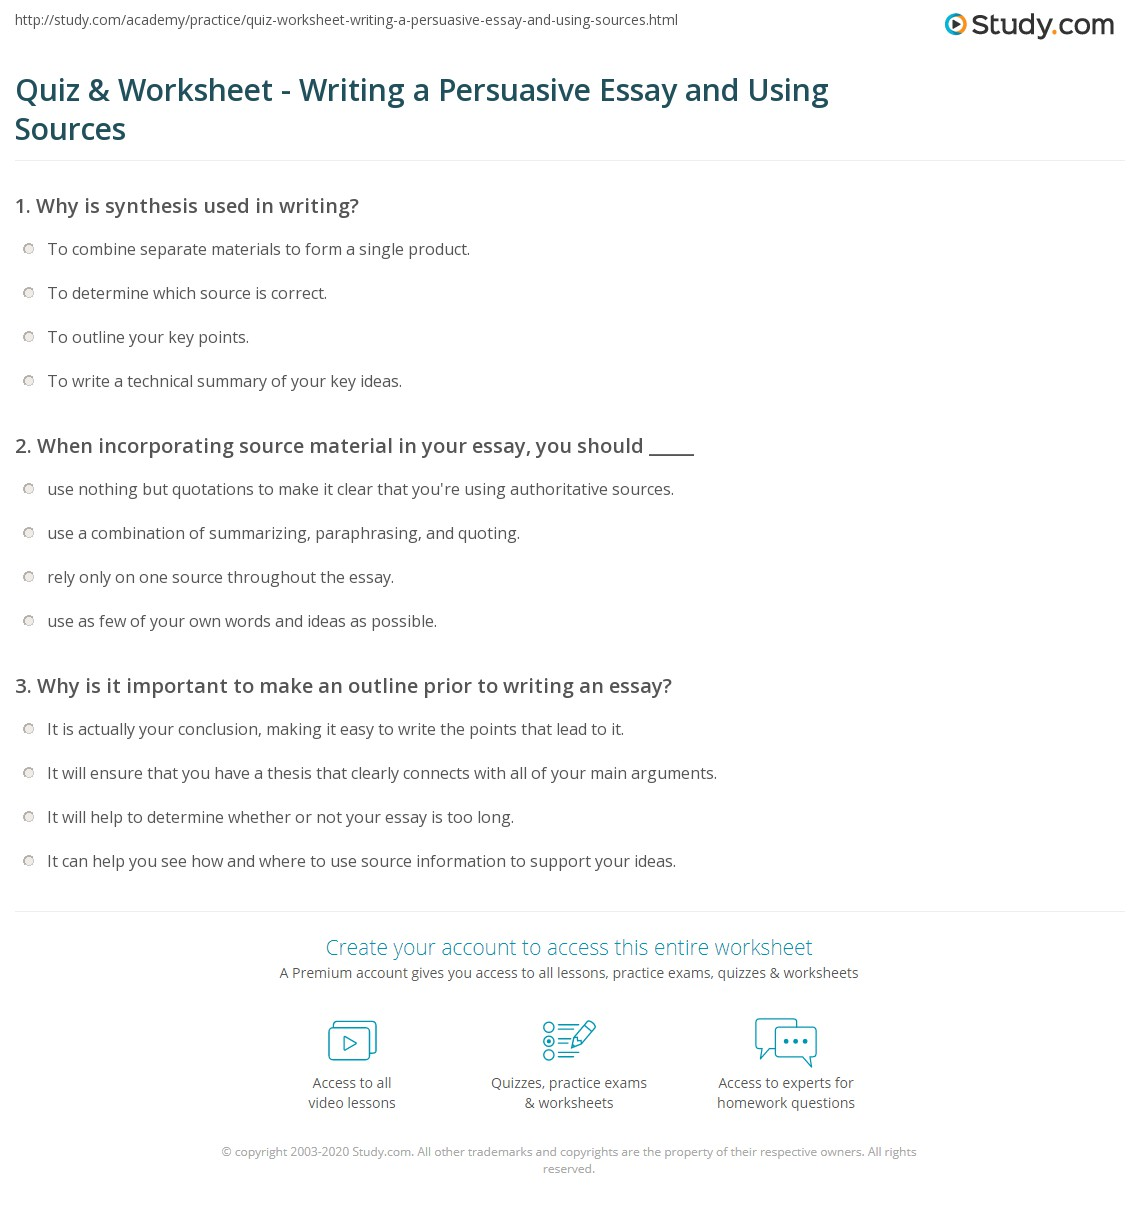 write persuasive essay best images about anchor charts  how to make a persuasive essay images about writing persuasive quiz amp worksheet writing a persuasive